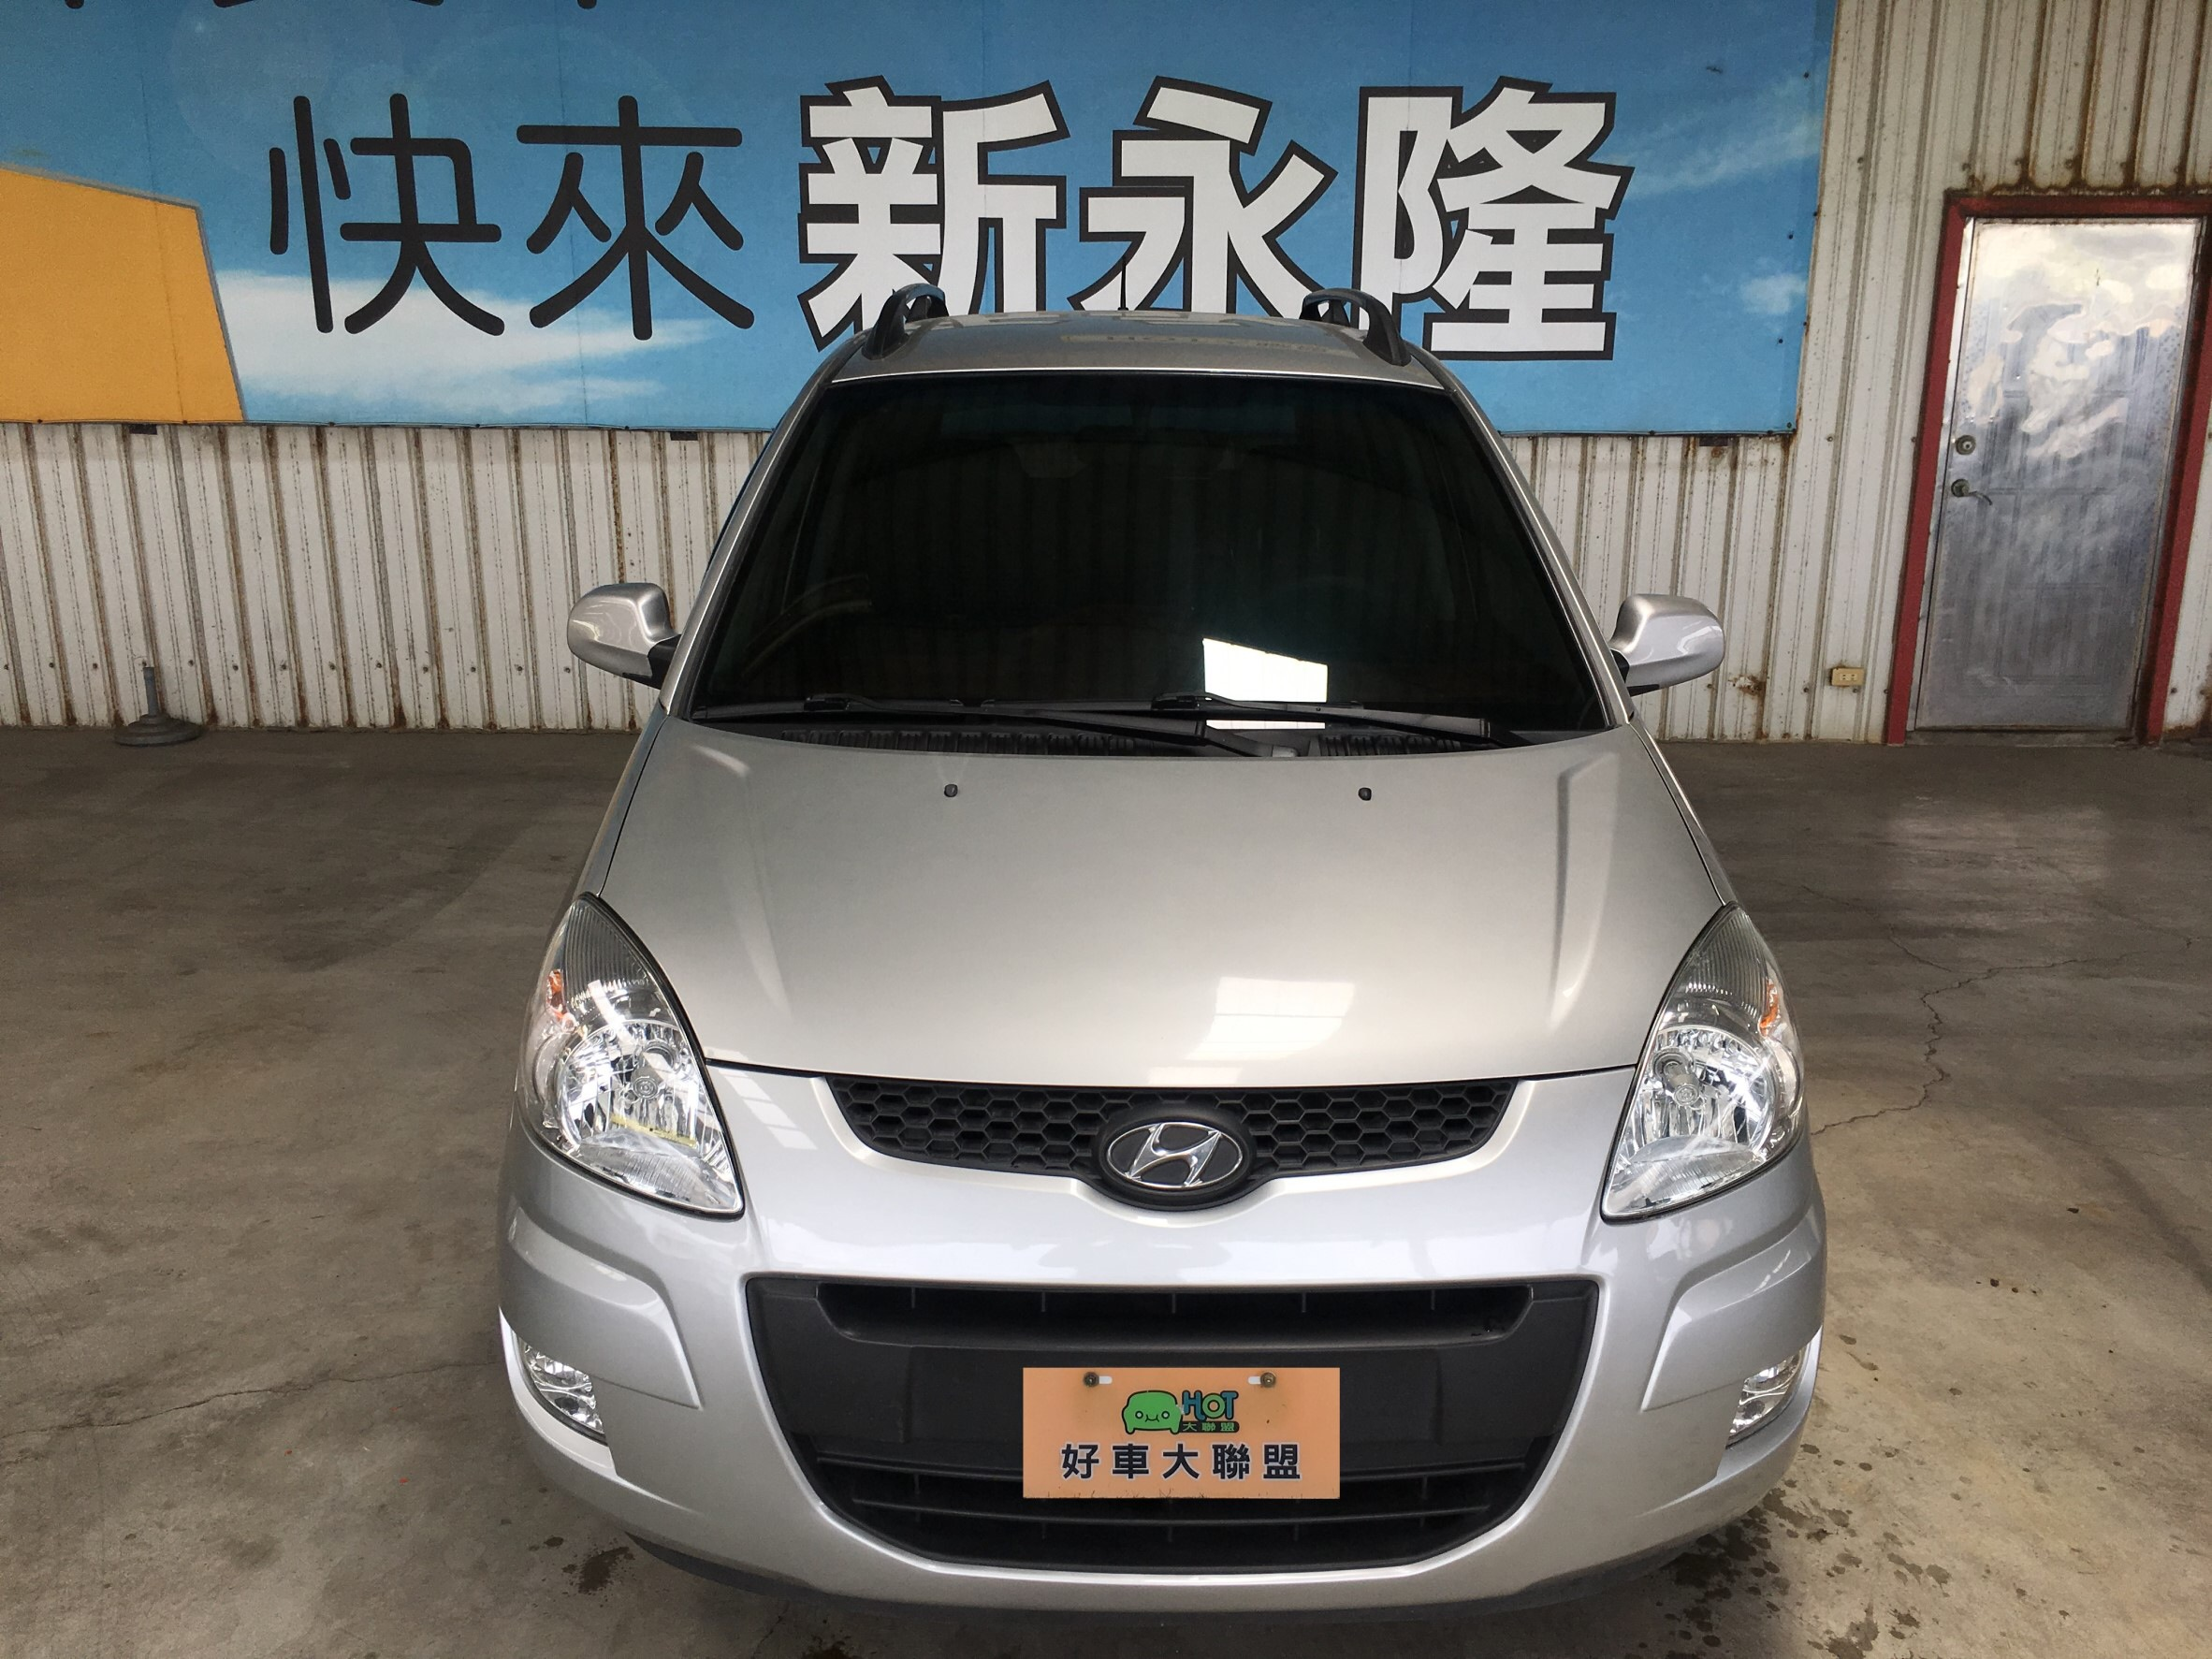 2011 Hyundai Matrix